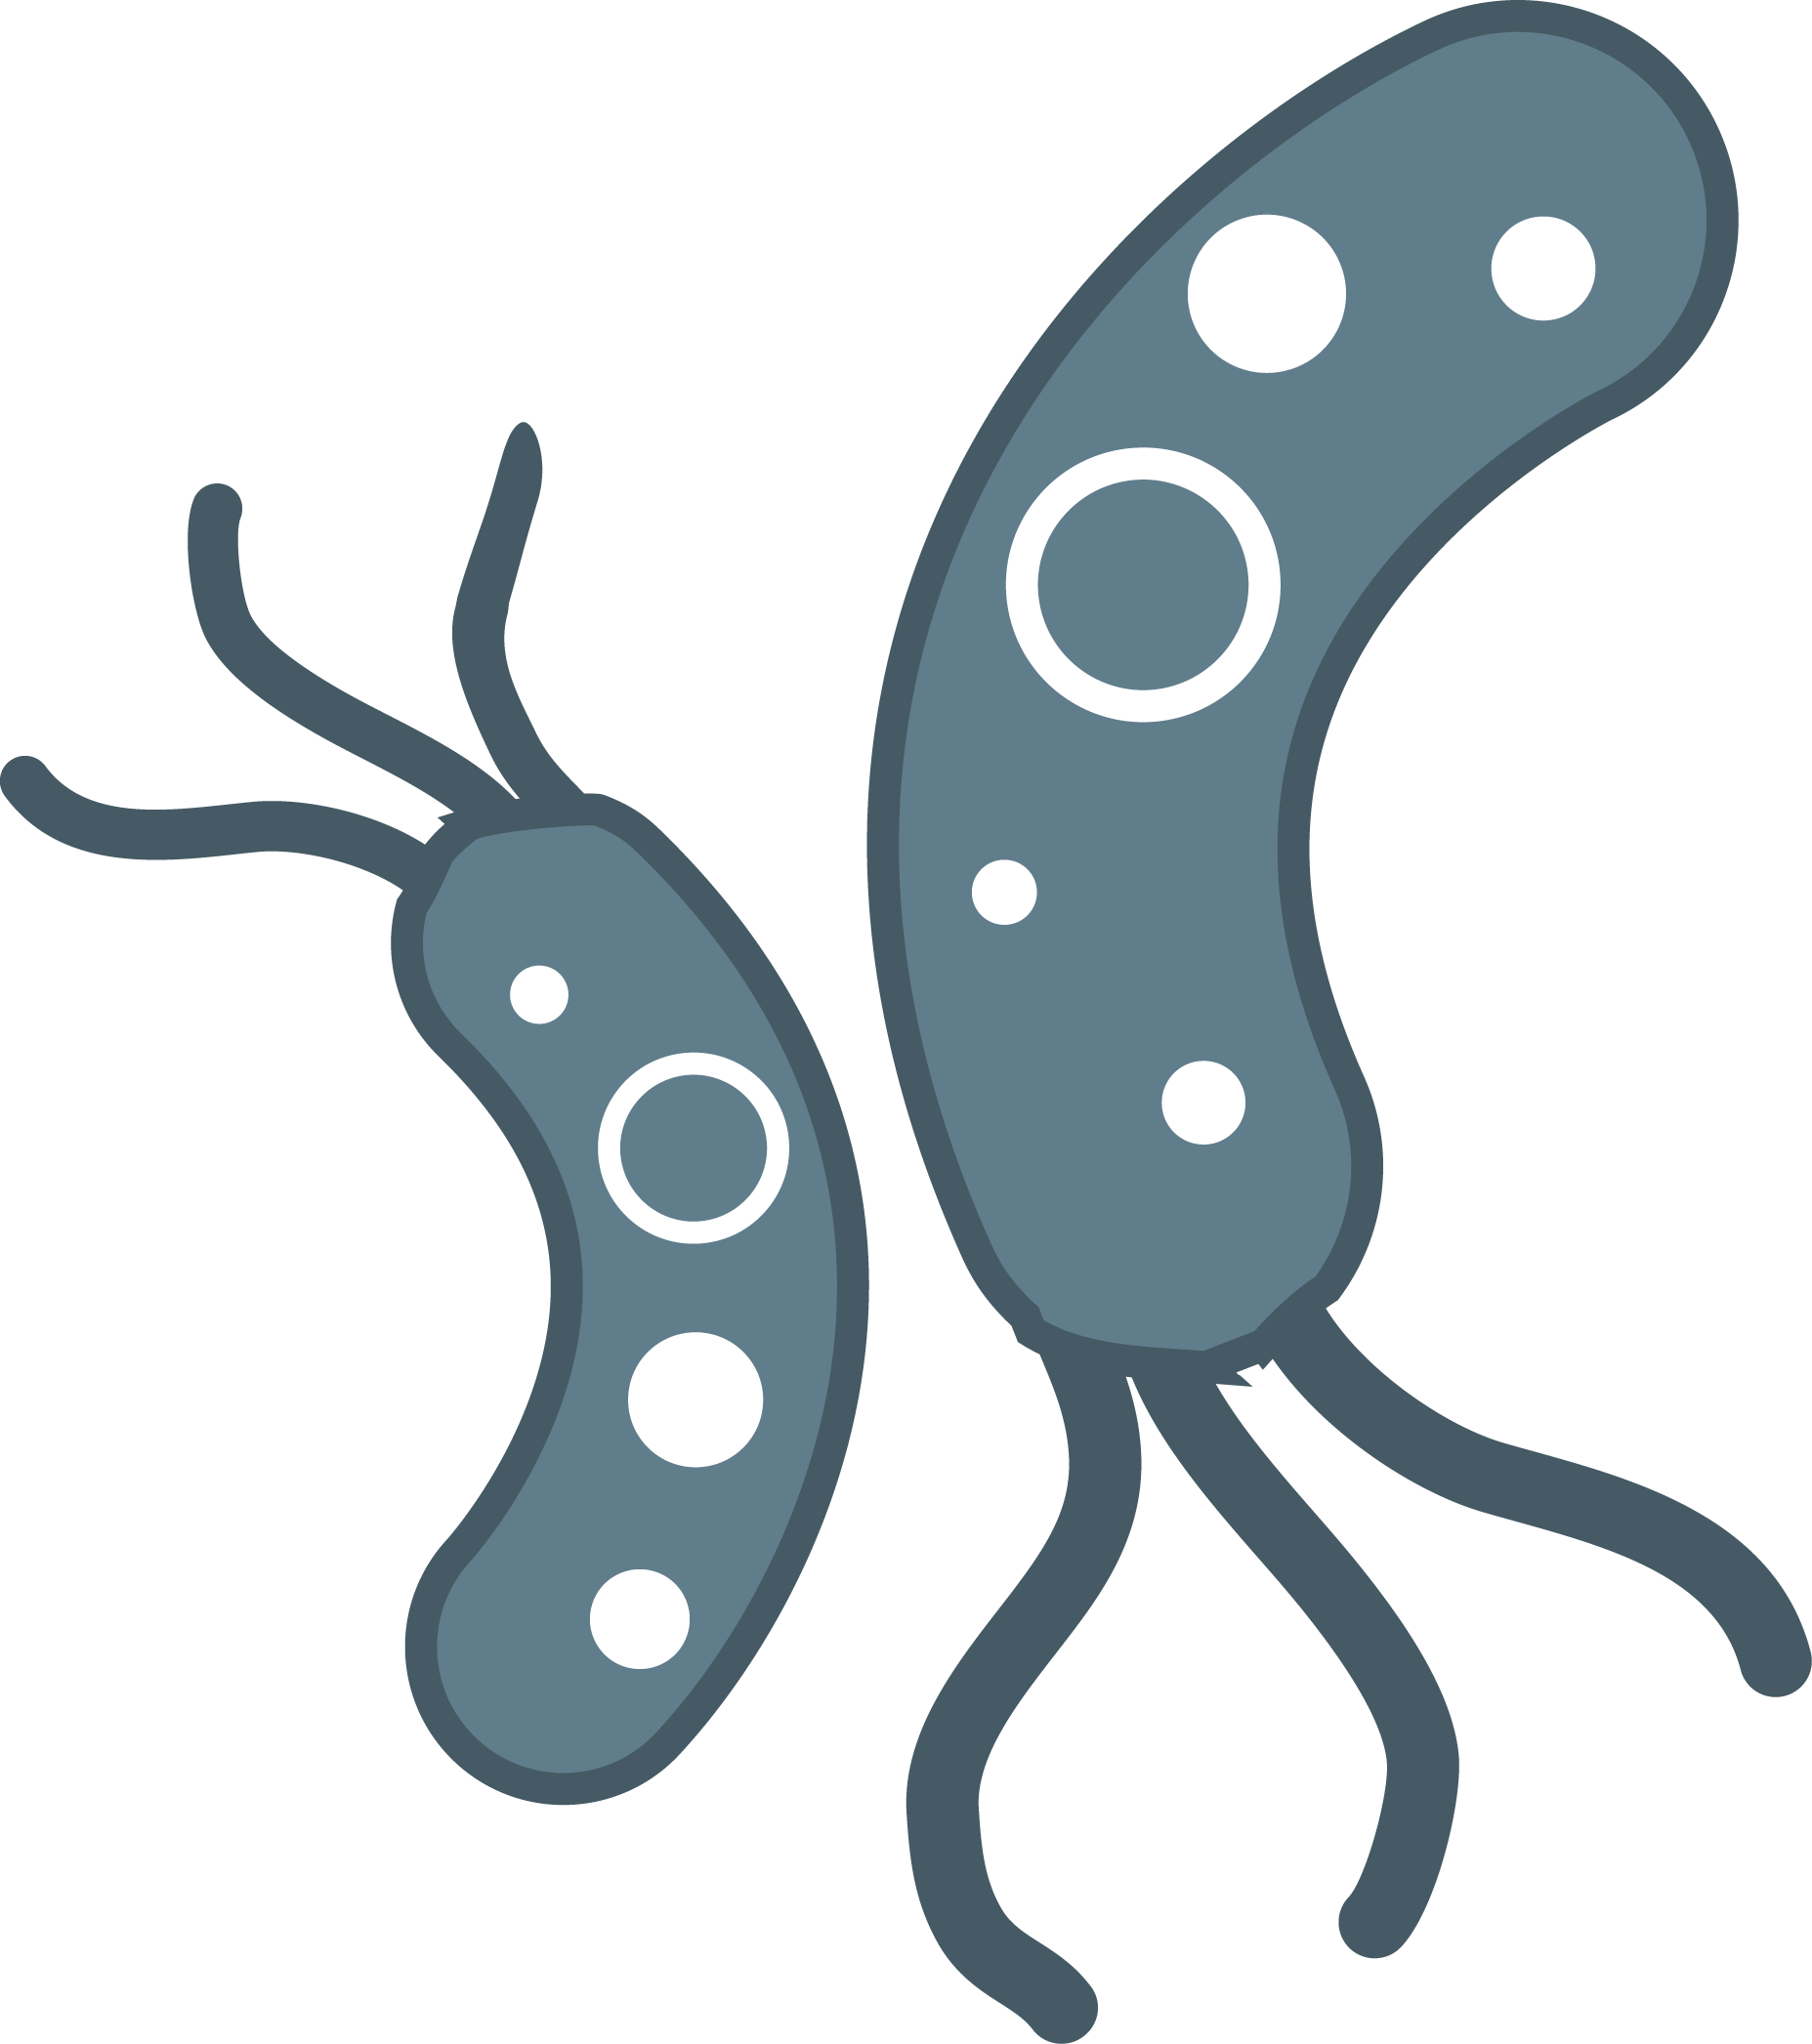 Png hd images pluspng. Bacteria clipart transparent background